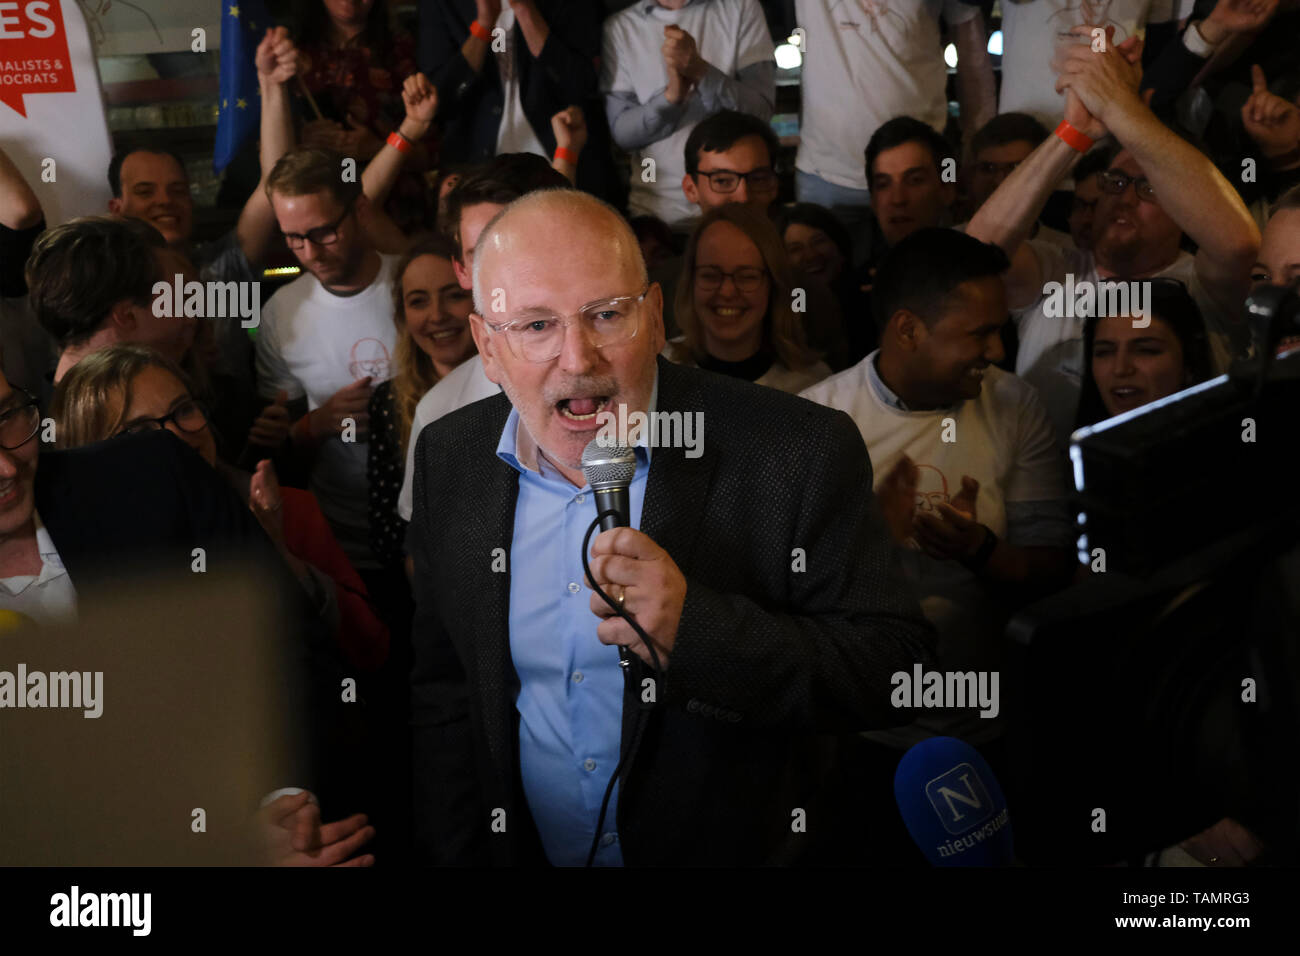 Brussels, Belgium. 26th May, 2019. Frans Timmermans, lead candidate of the Party of European Socialists (PES), speaks at the PES European elections headquarters. Credit: ALEXANDROS MICHAILIDIS/Alamy Live News Stock Photo